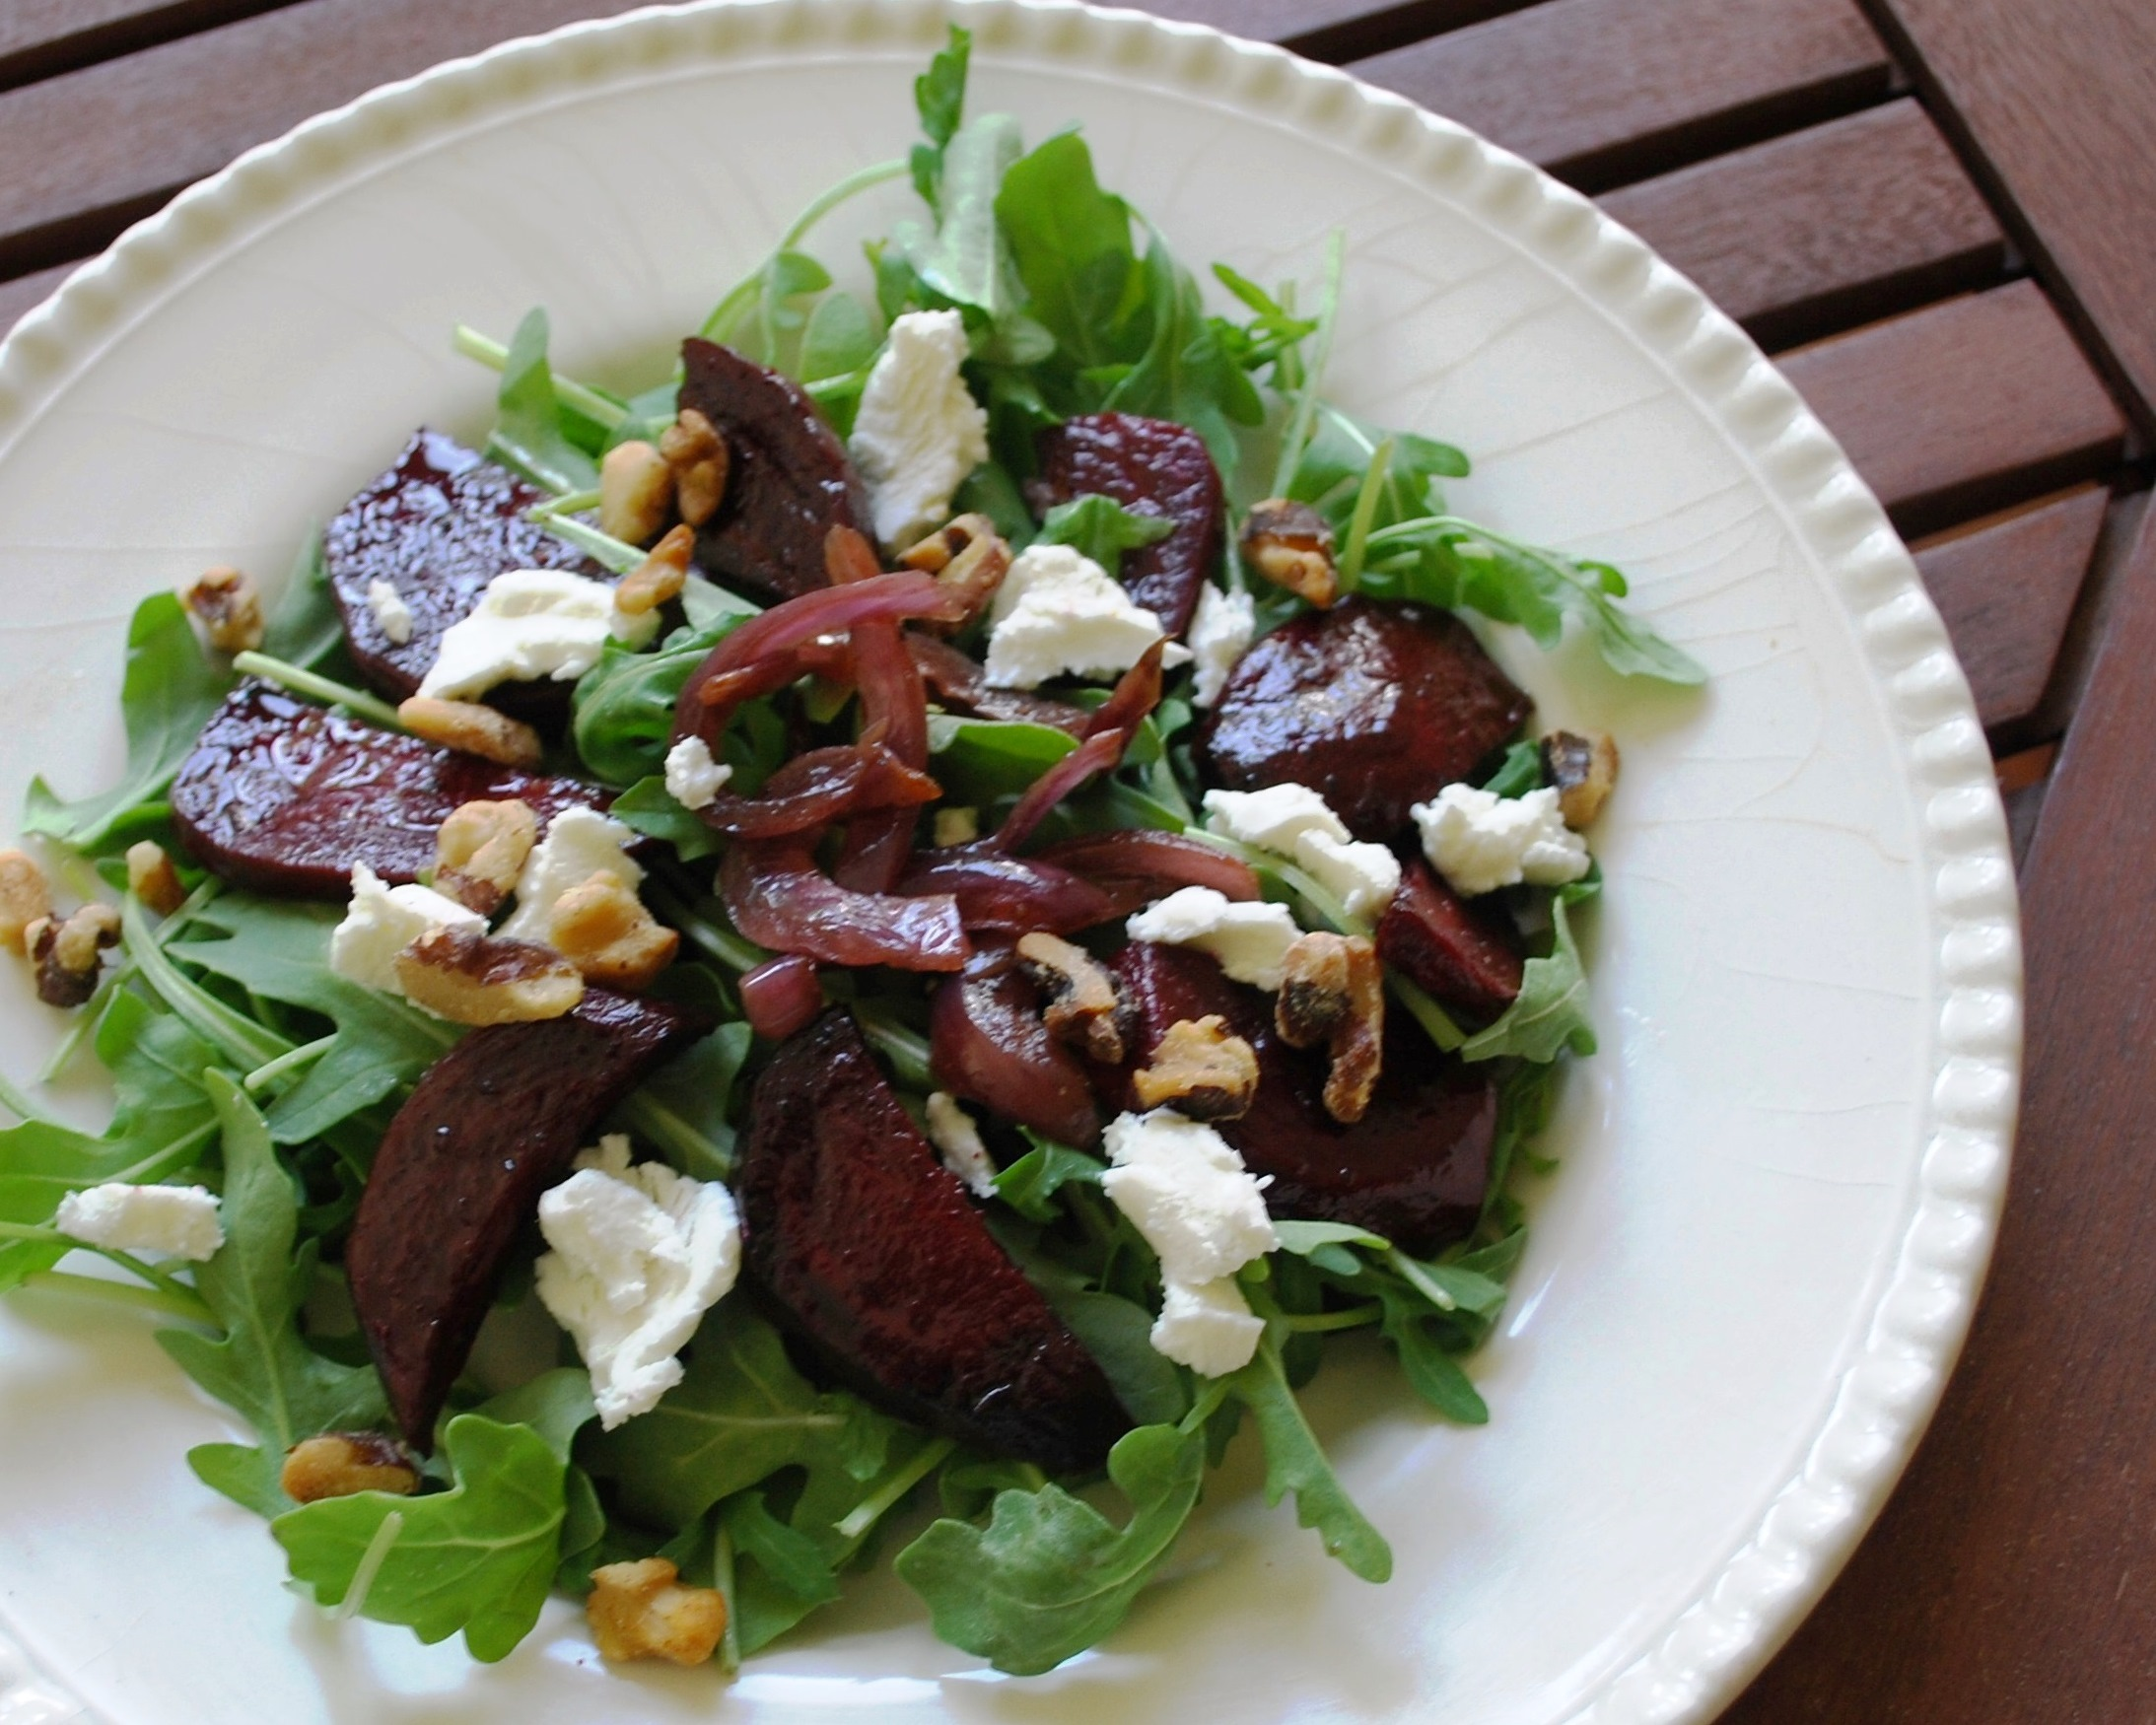 Summer Salad Days & Roasted Beets with Goat Cheese Salad | Susan Nye ...